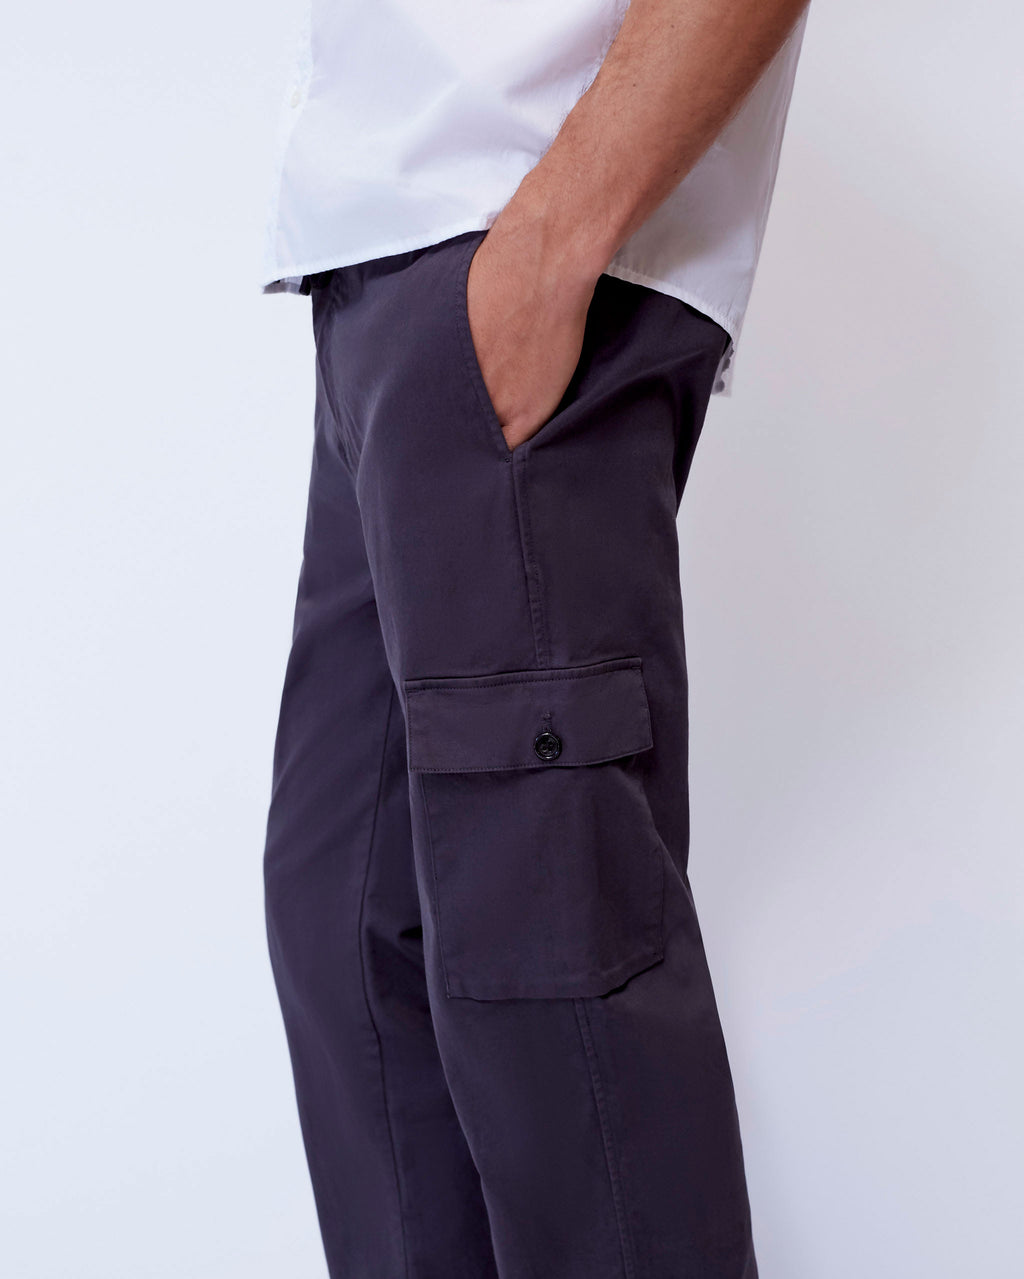 The Sandkey Pant in Washed Black